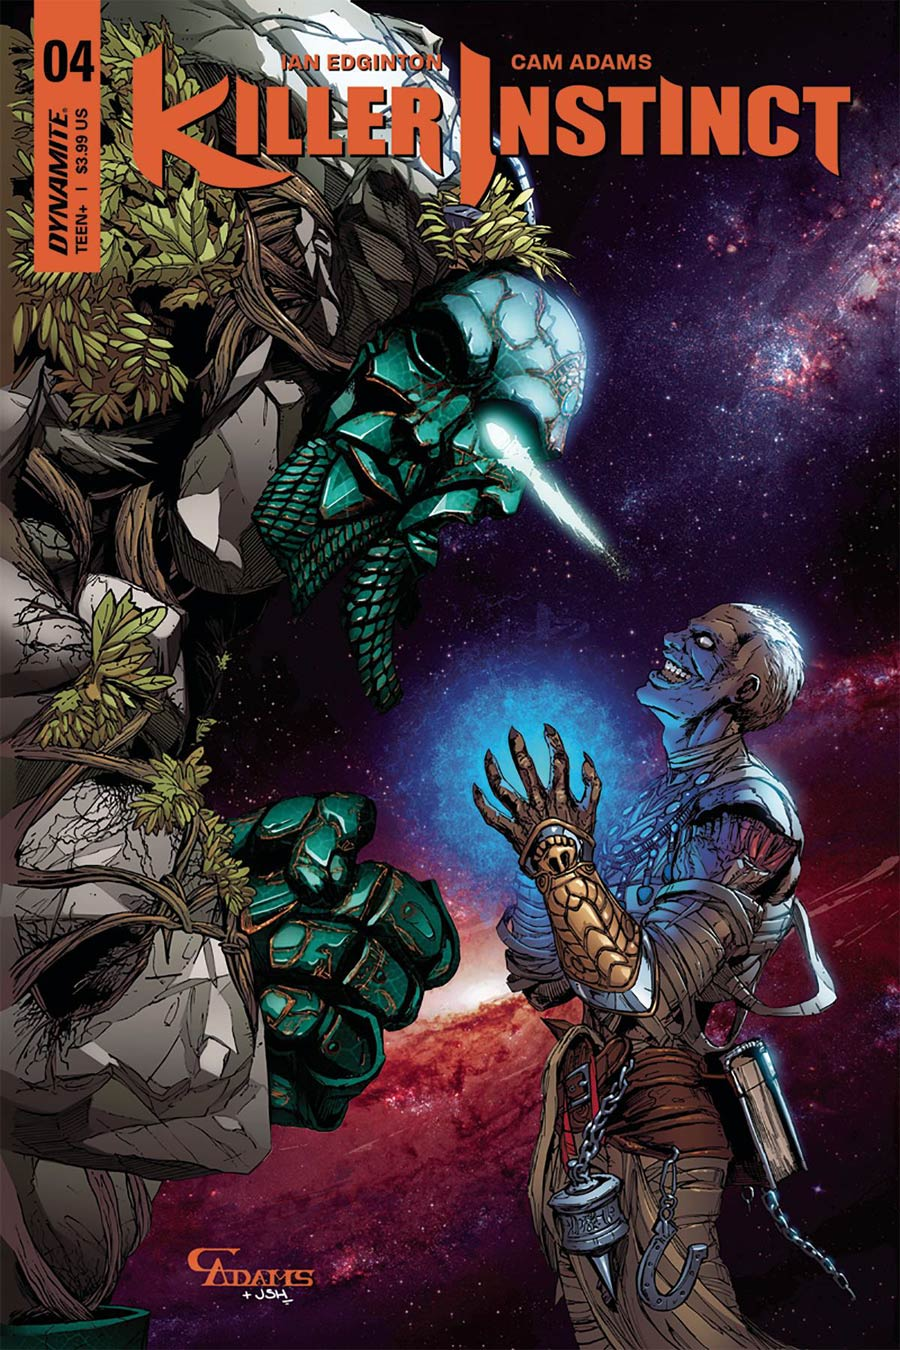 Killer Instinct Vol 2 #4 Cover C Variant Cam Adams Subscription Cover